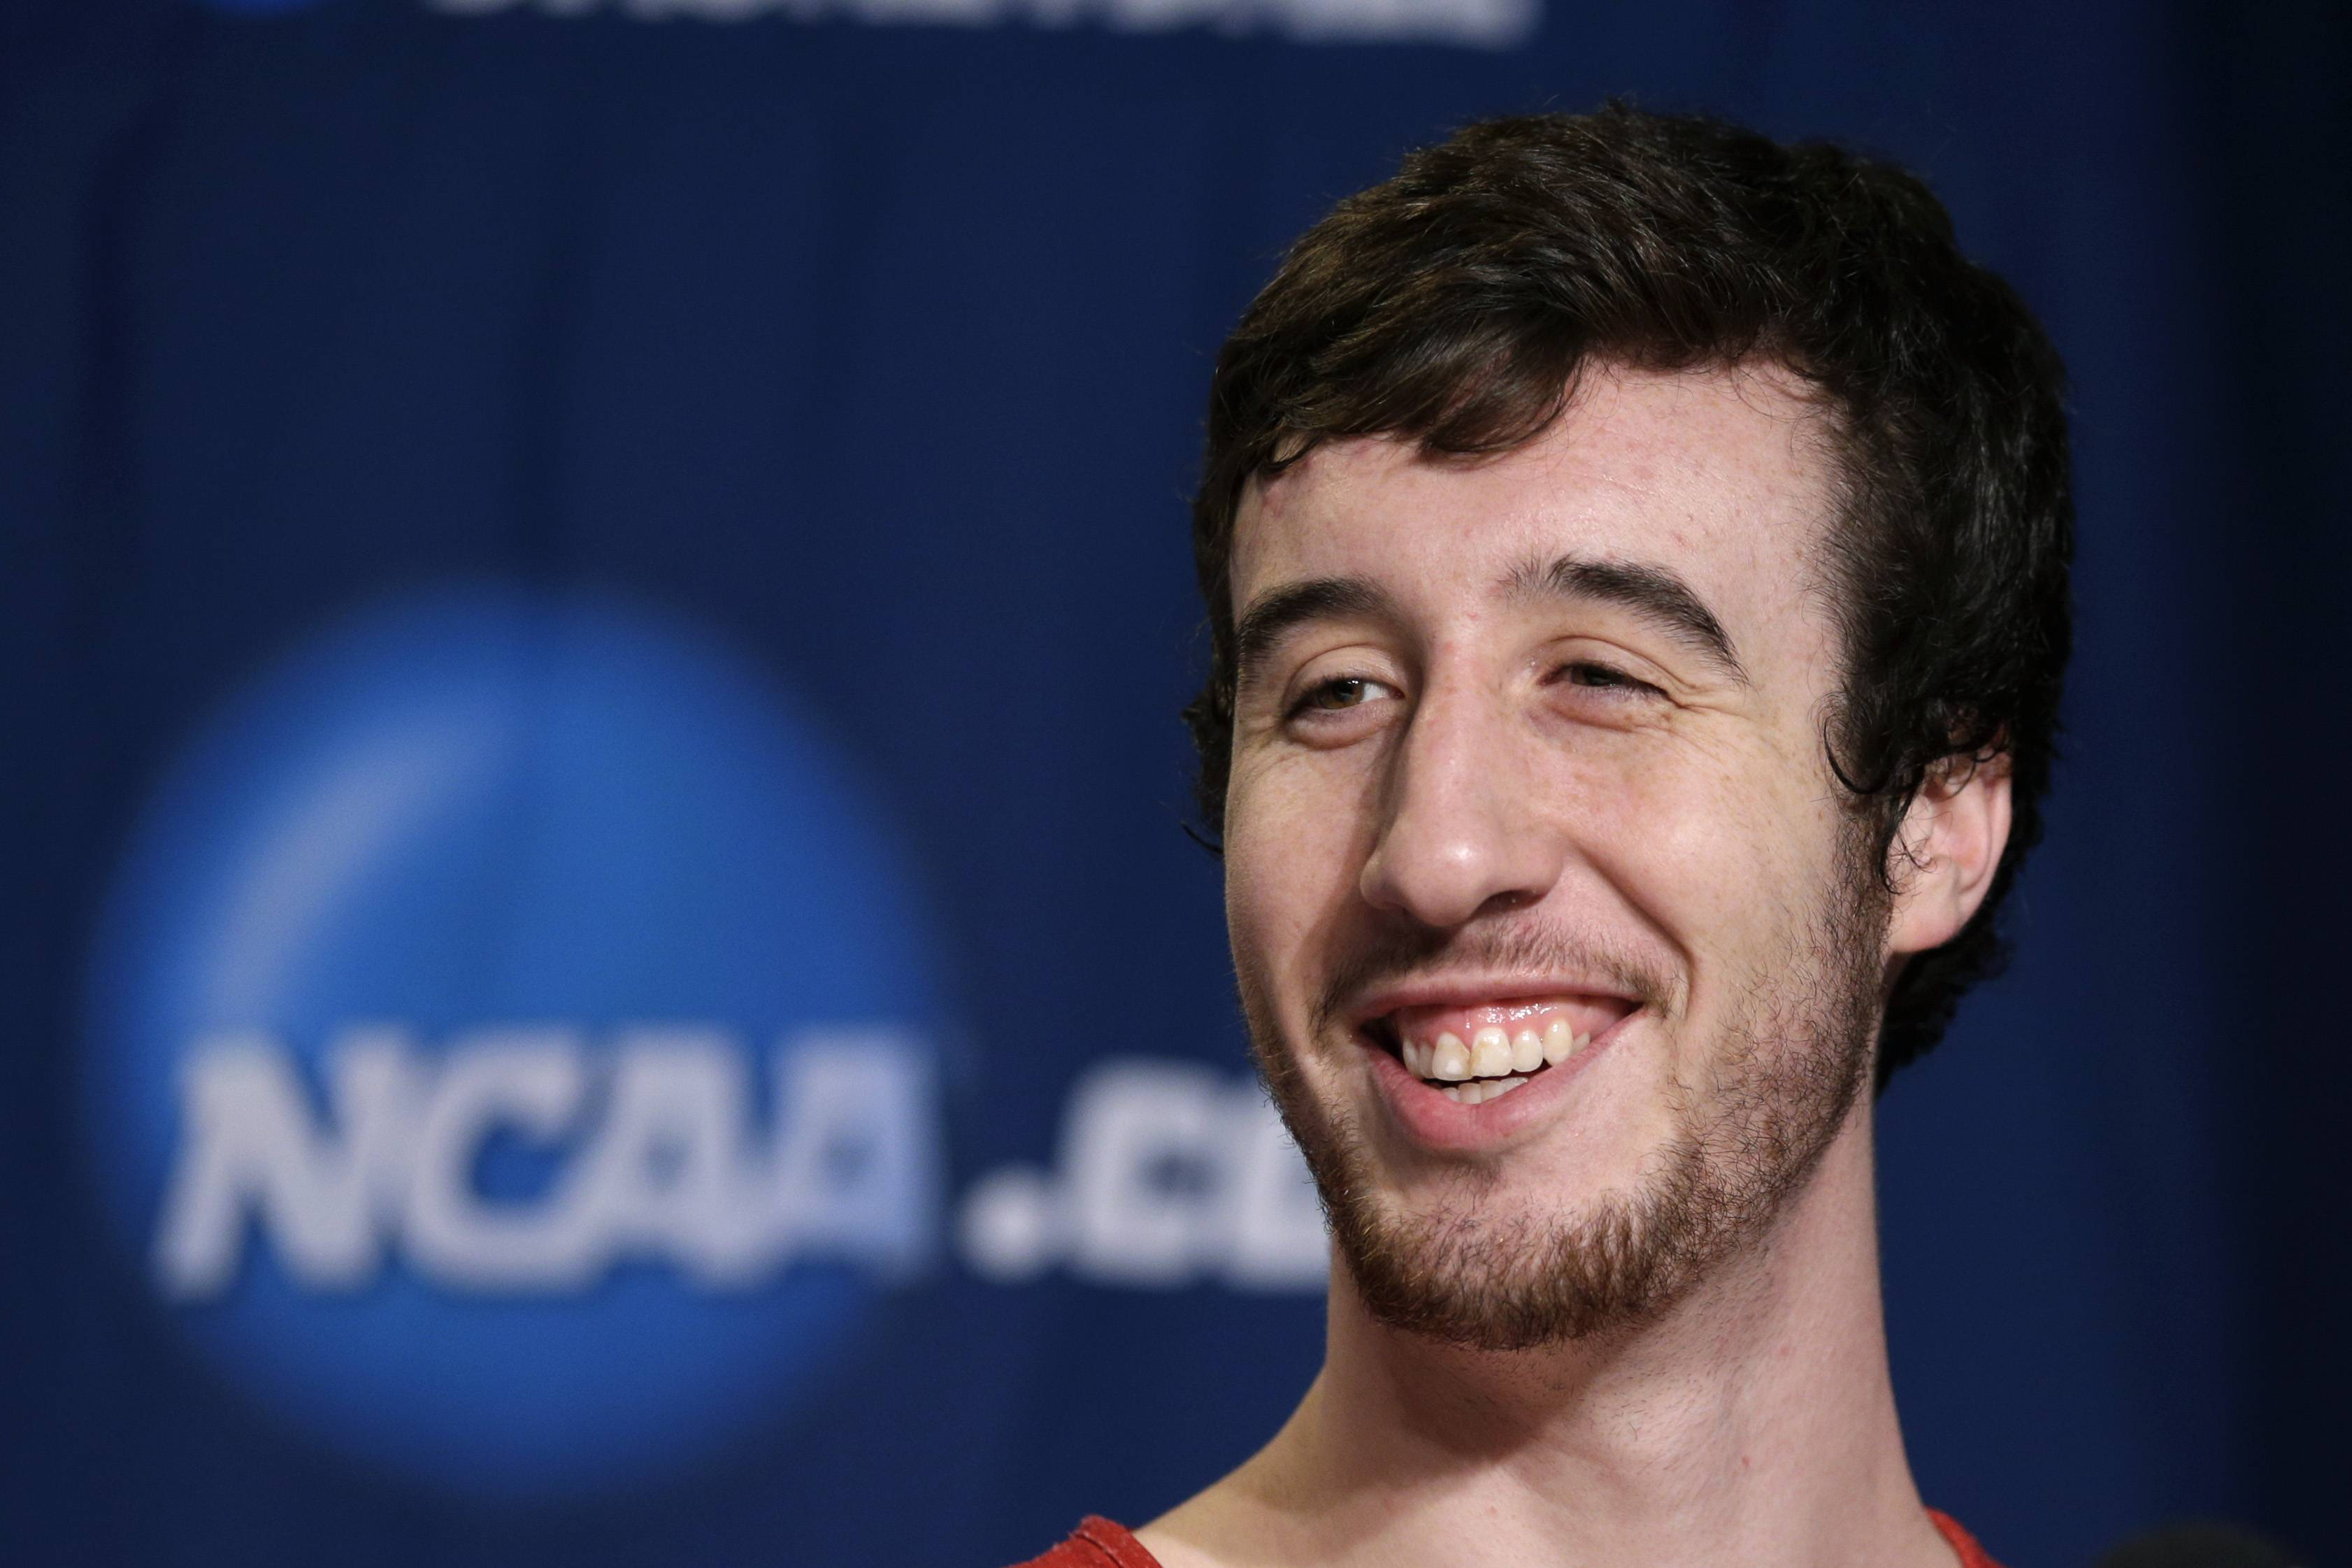 Wisconsin's Frank Kaminsky answers questions from members of the media during a news conference at the NCAA college basketball tournament on March 28 in Anaheim, Calif. Wisconsin plays Arizona in a regional final on Saturday.